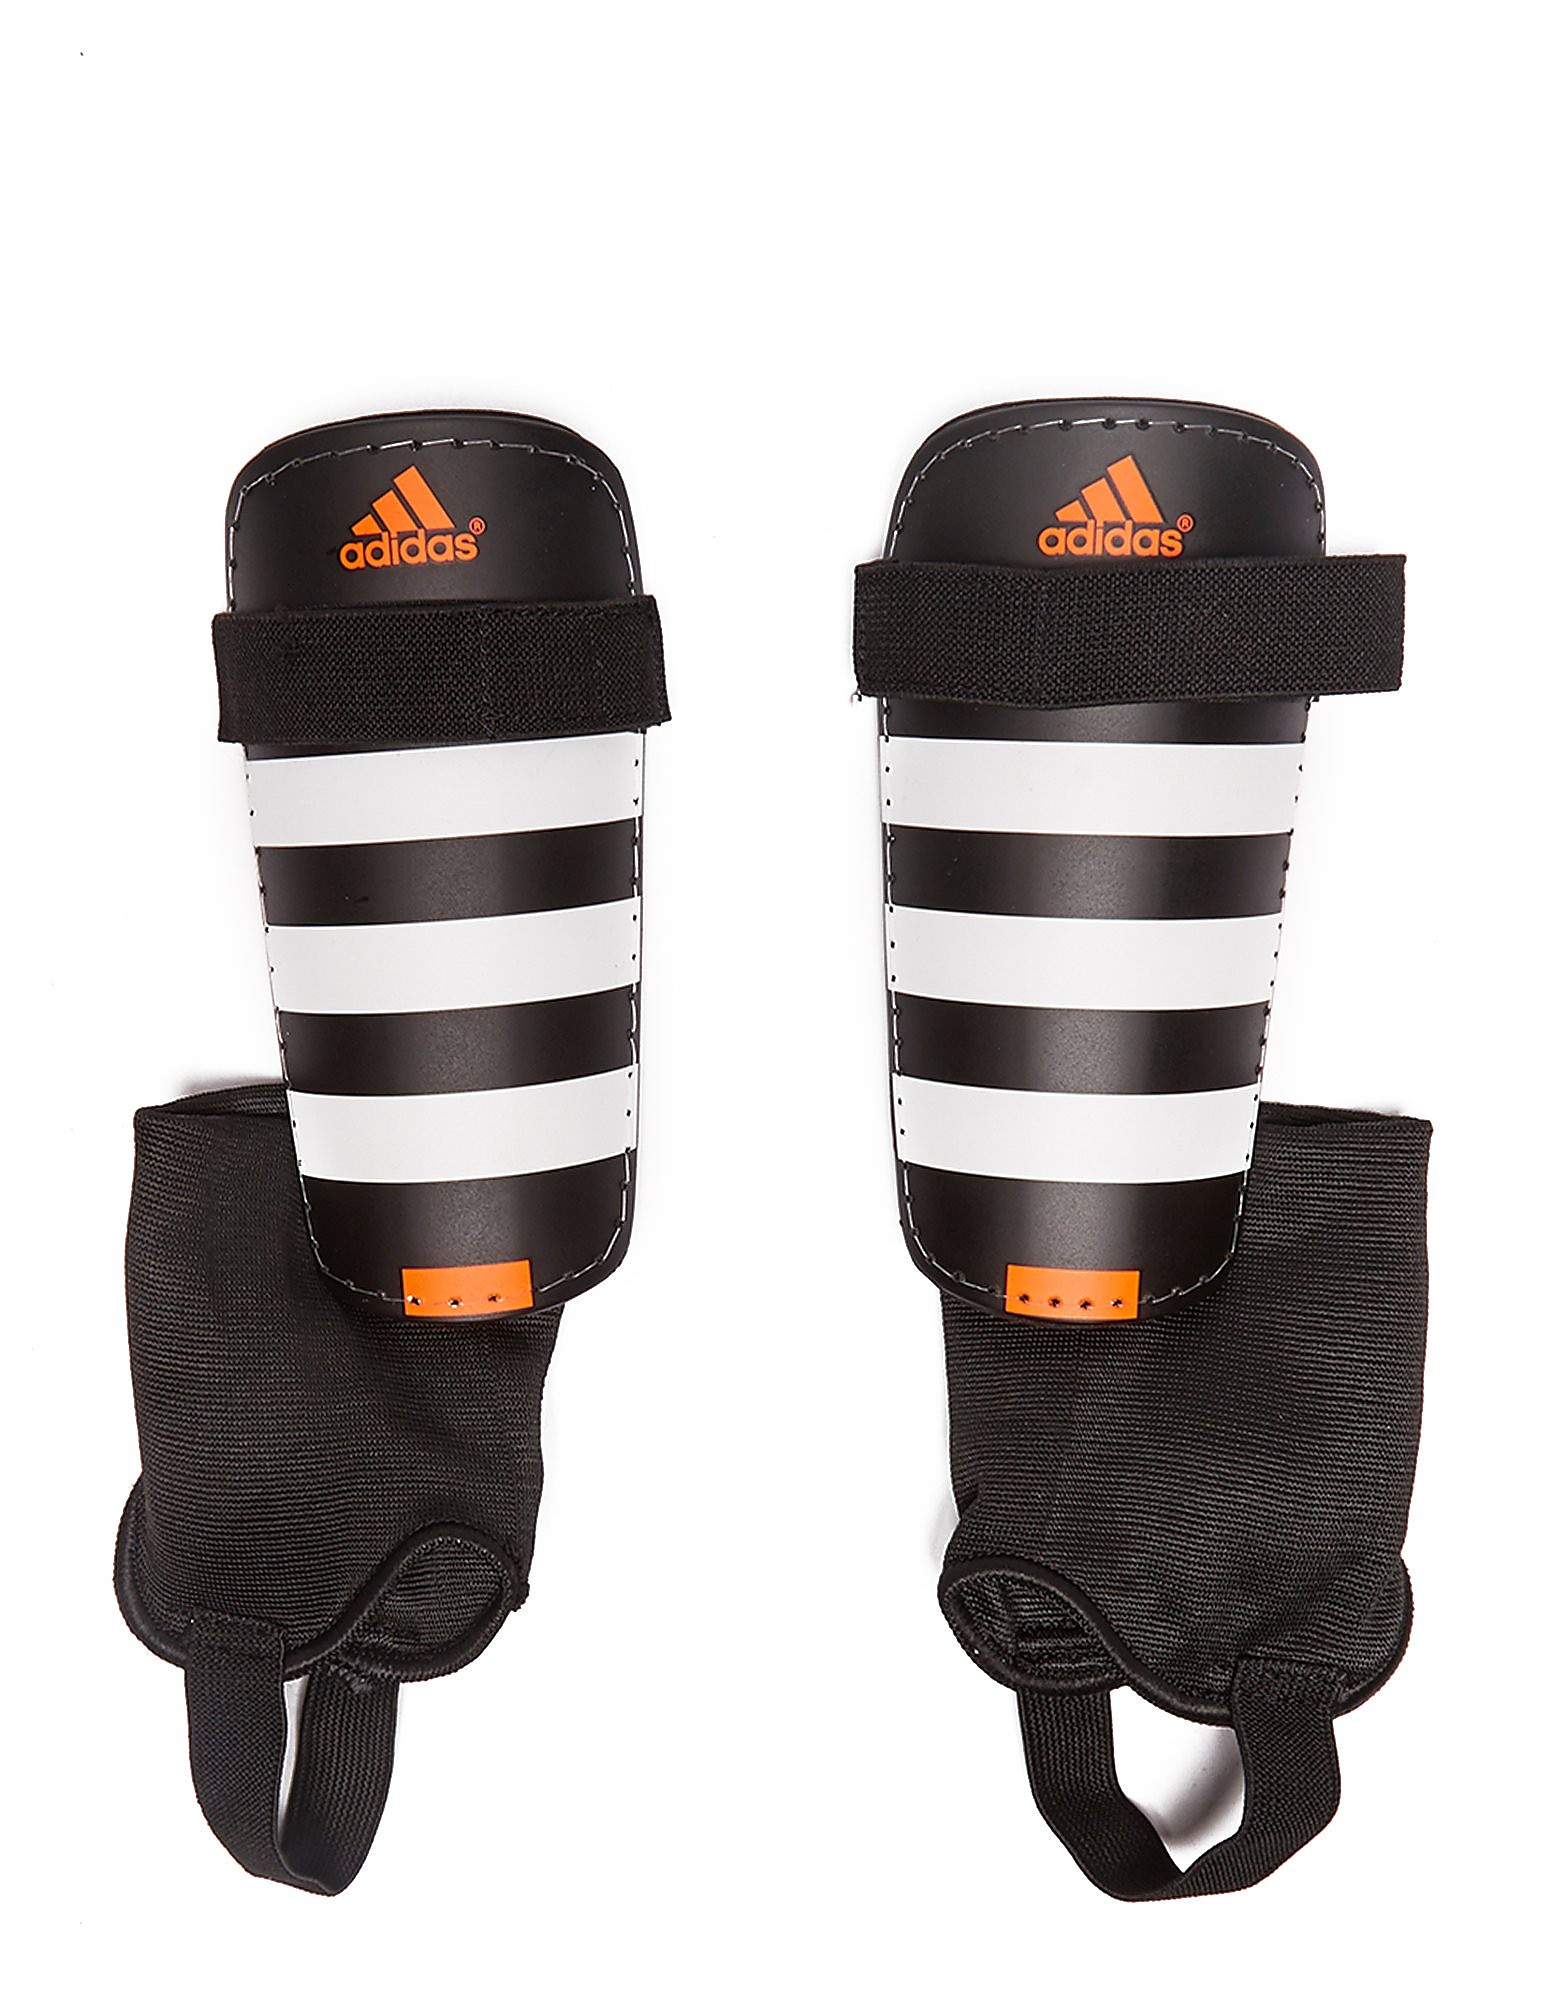 adidas Everclub Shin Guards